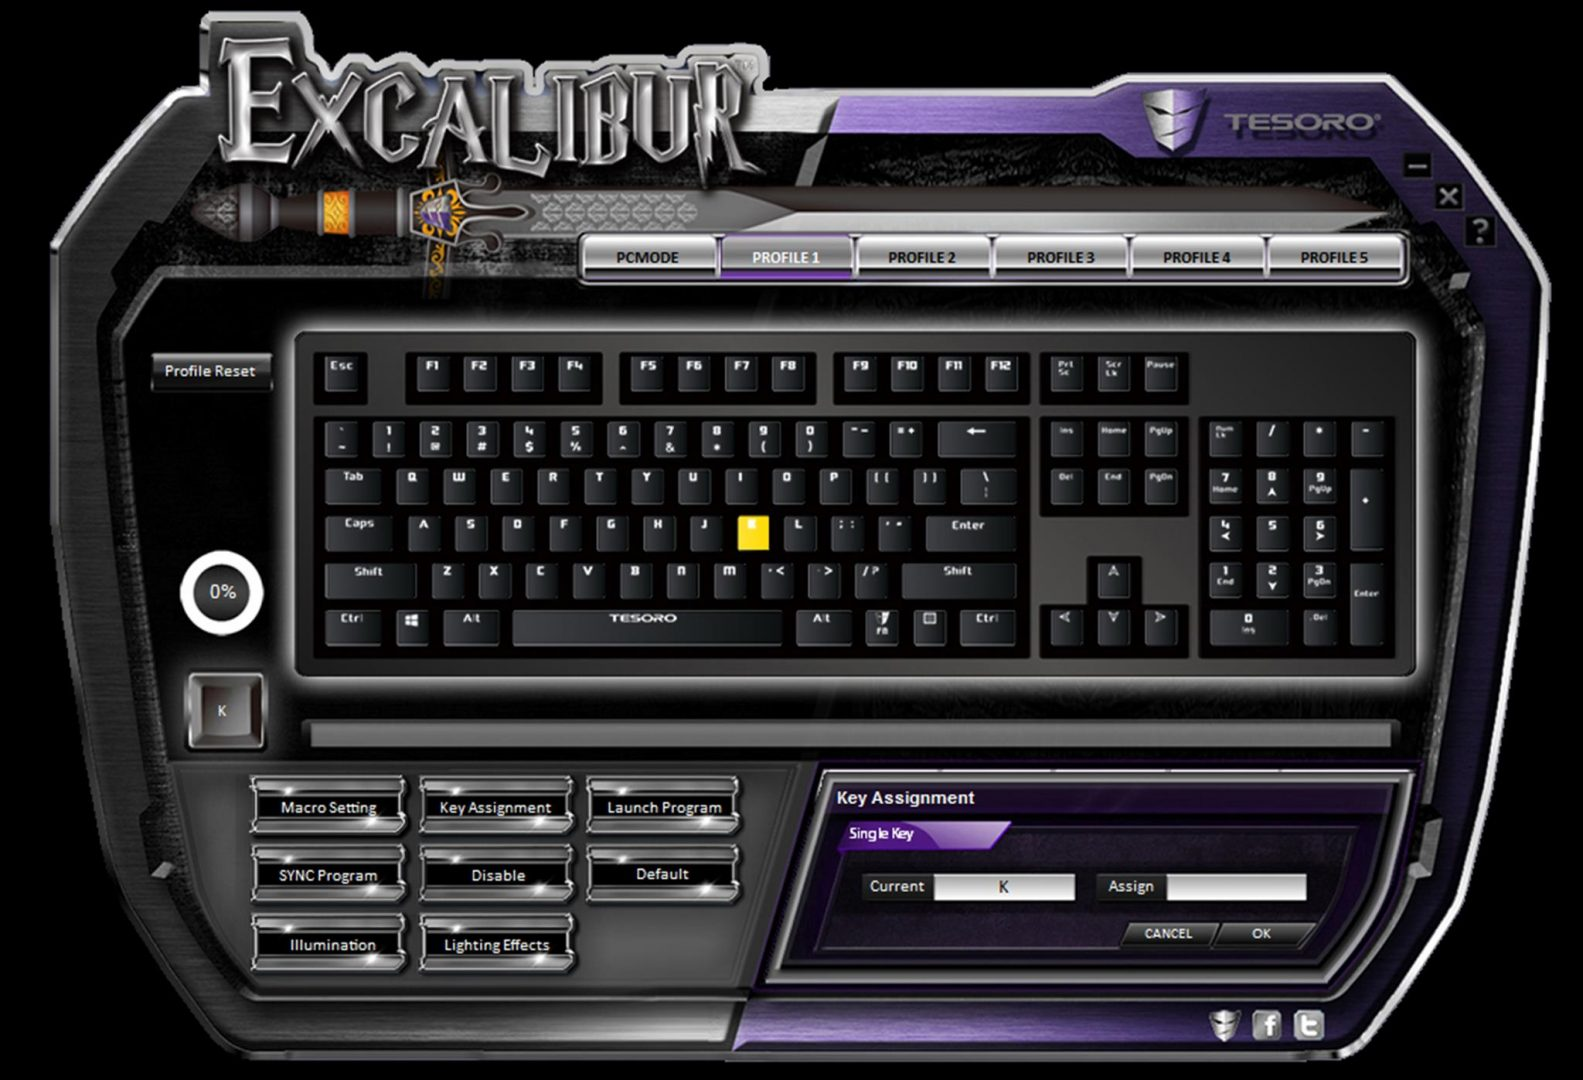 tesoro excalibur spectrum software 2